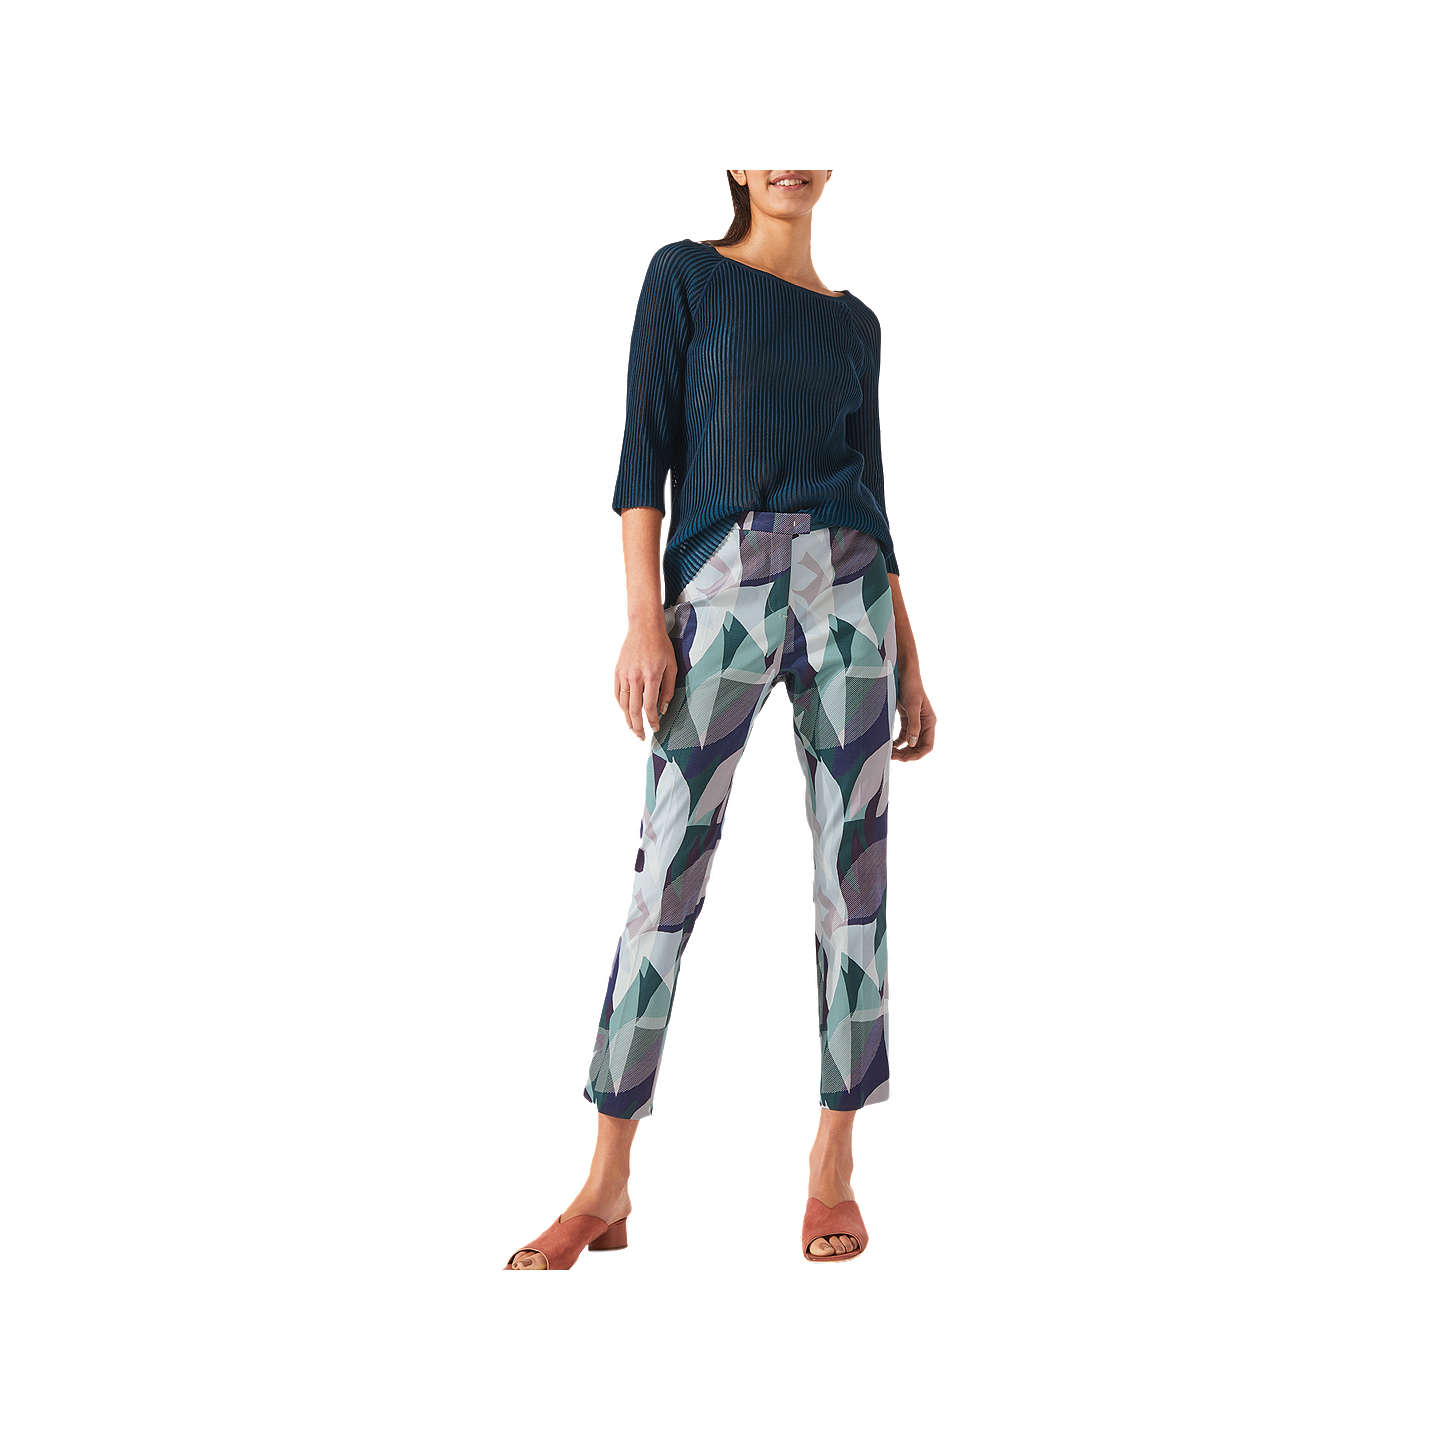 Woven Leaves Cigarette Trousers Jigsaw 259mC7